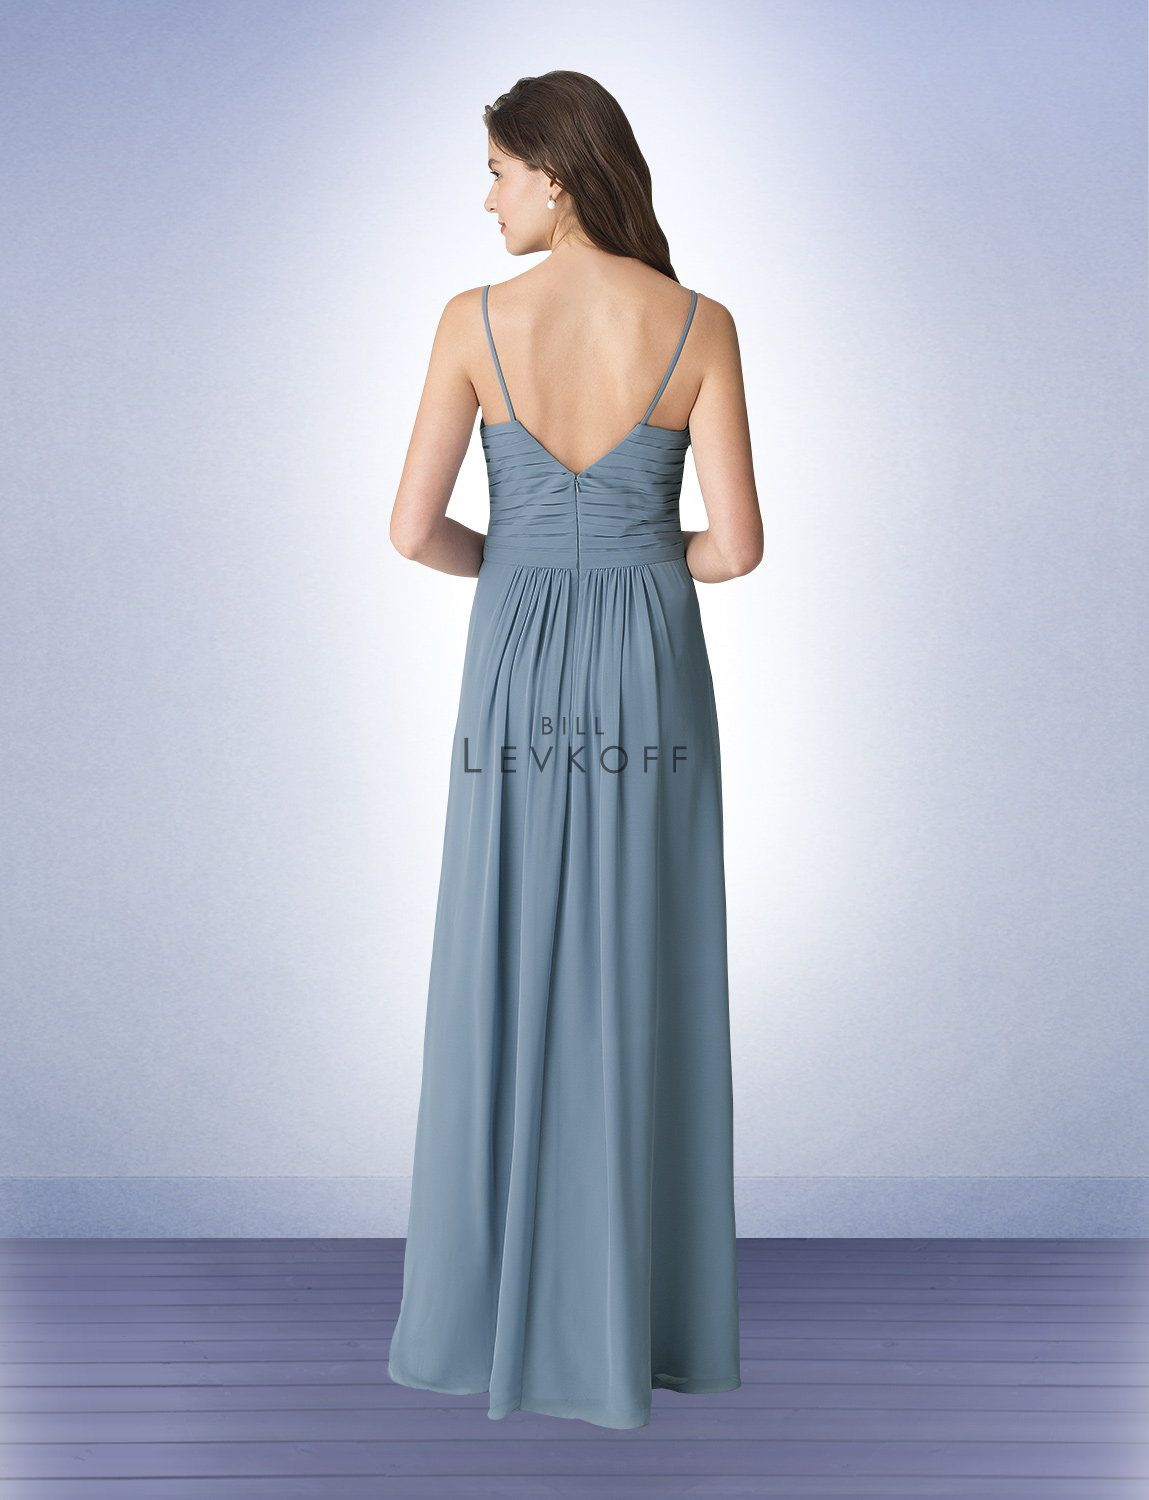 ec3972a7006 Bridesmaid Dress Style 1269 - Bridesmaid Dresses by Bill Levkoff ...